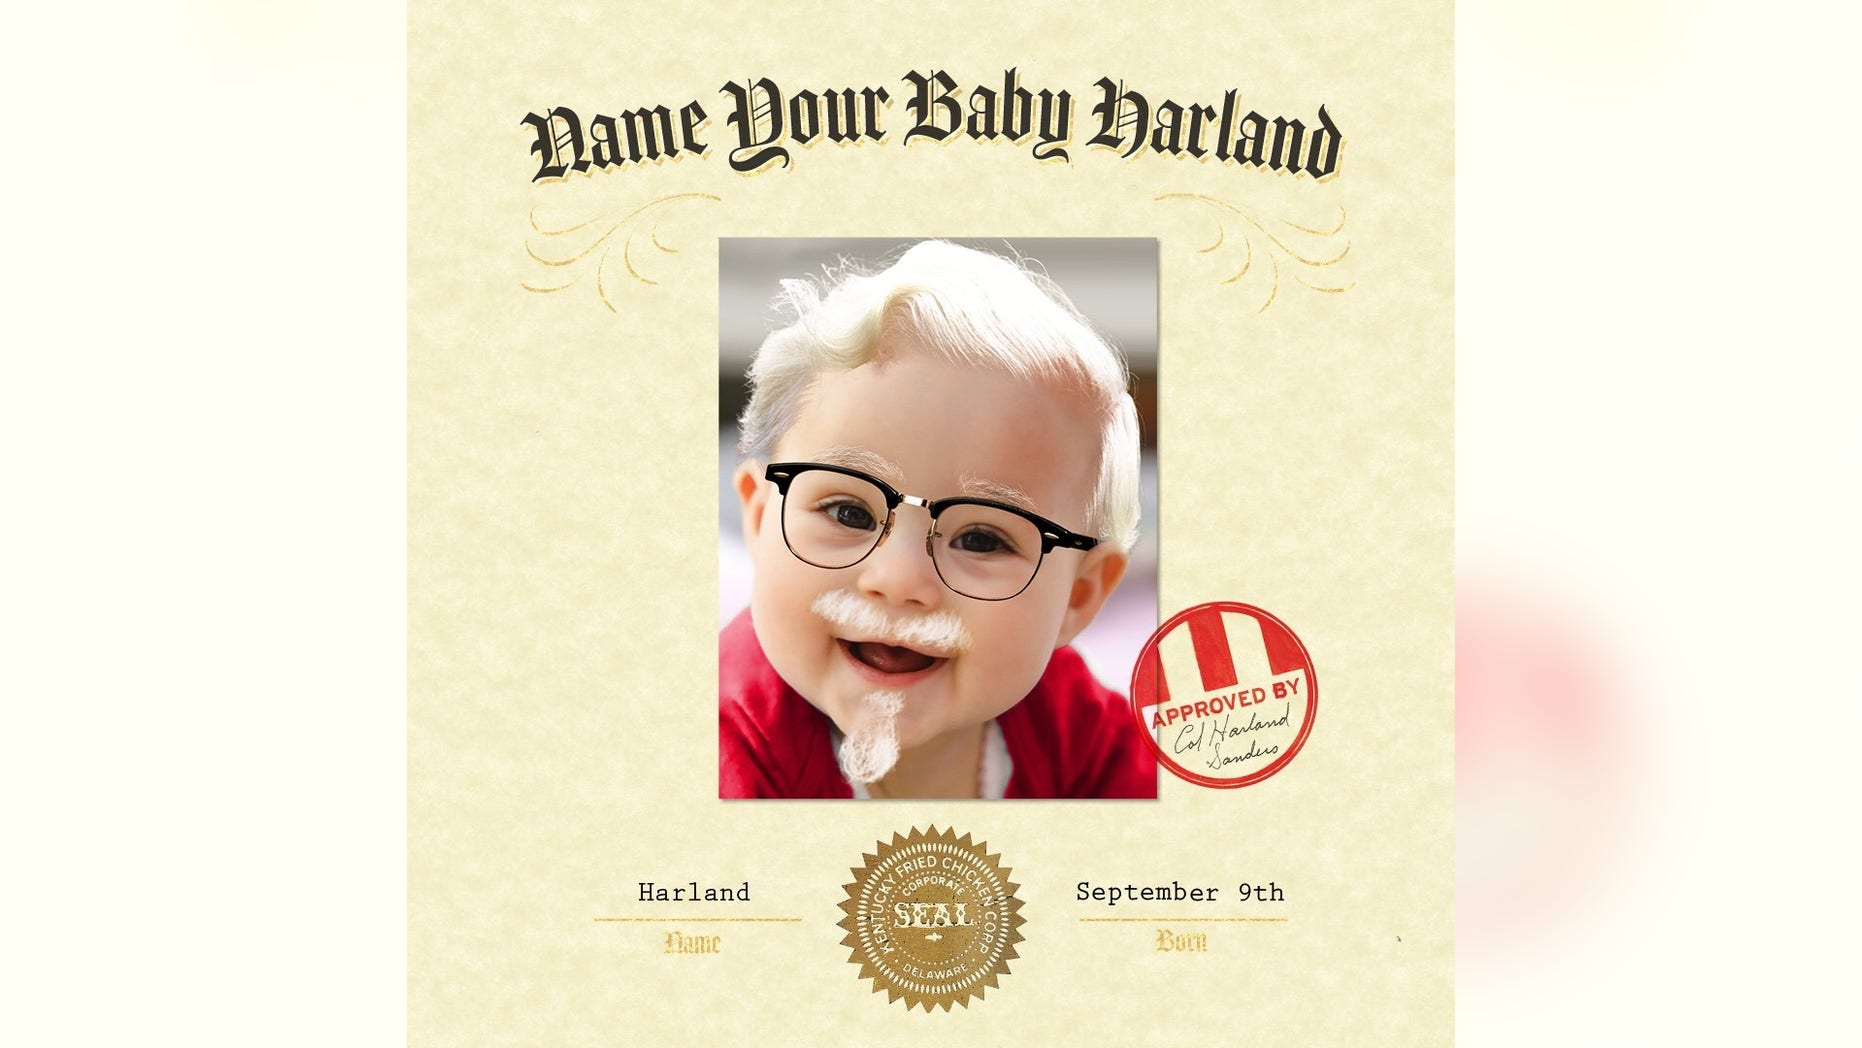 KFC's new 'Name Your Baby Harland' contest tasks parents with doing just that for a chance at $11,000.